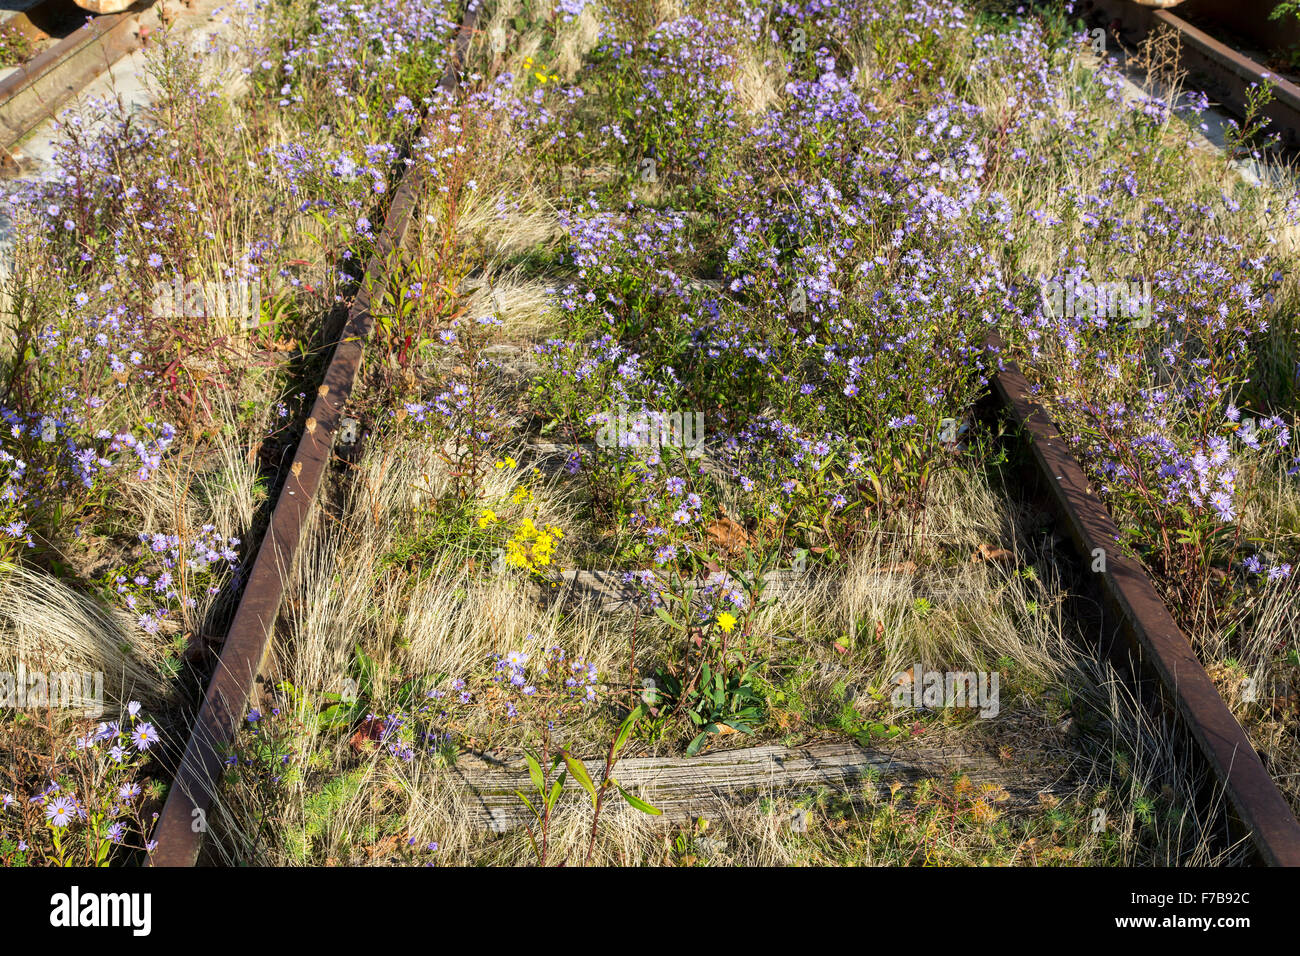 Old railway tracks, overgrown with plants, flowers, - Stock Image